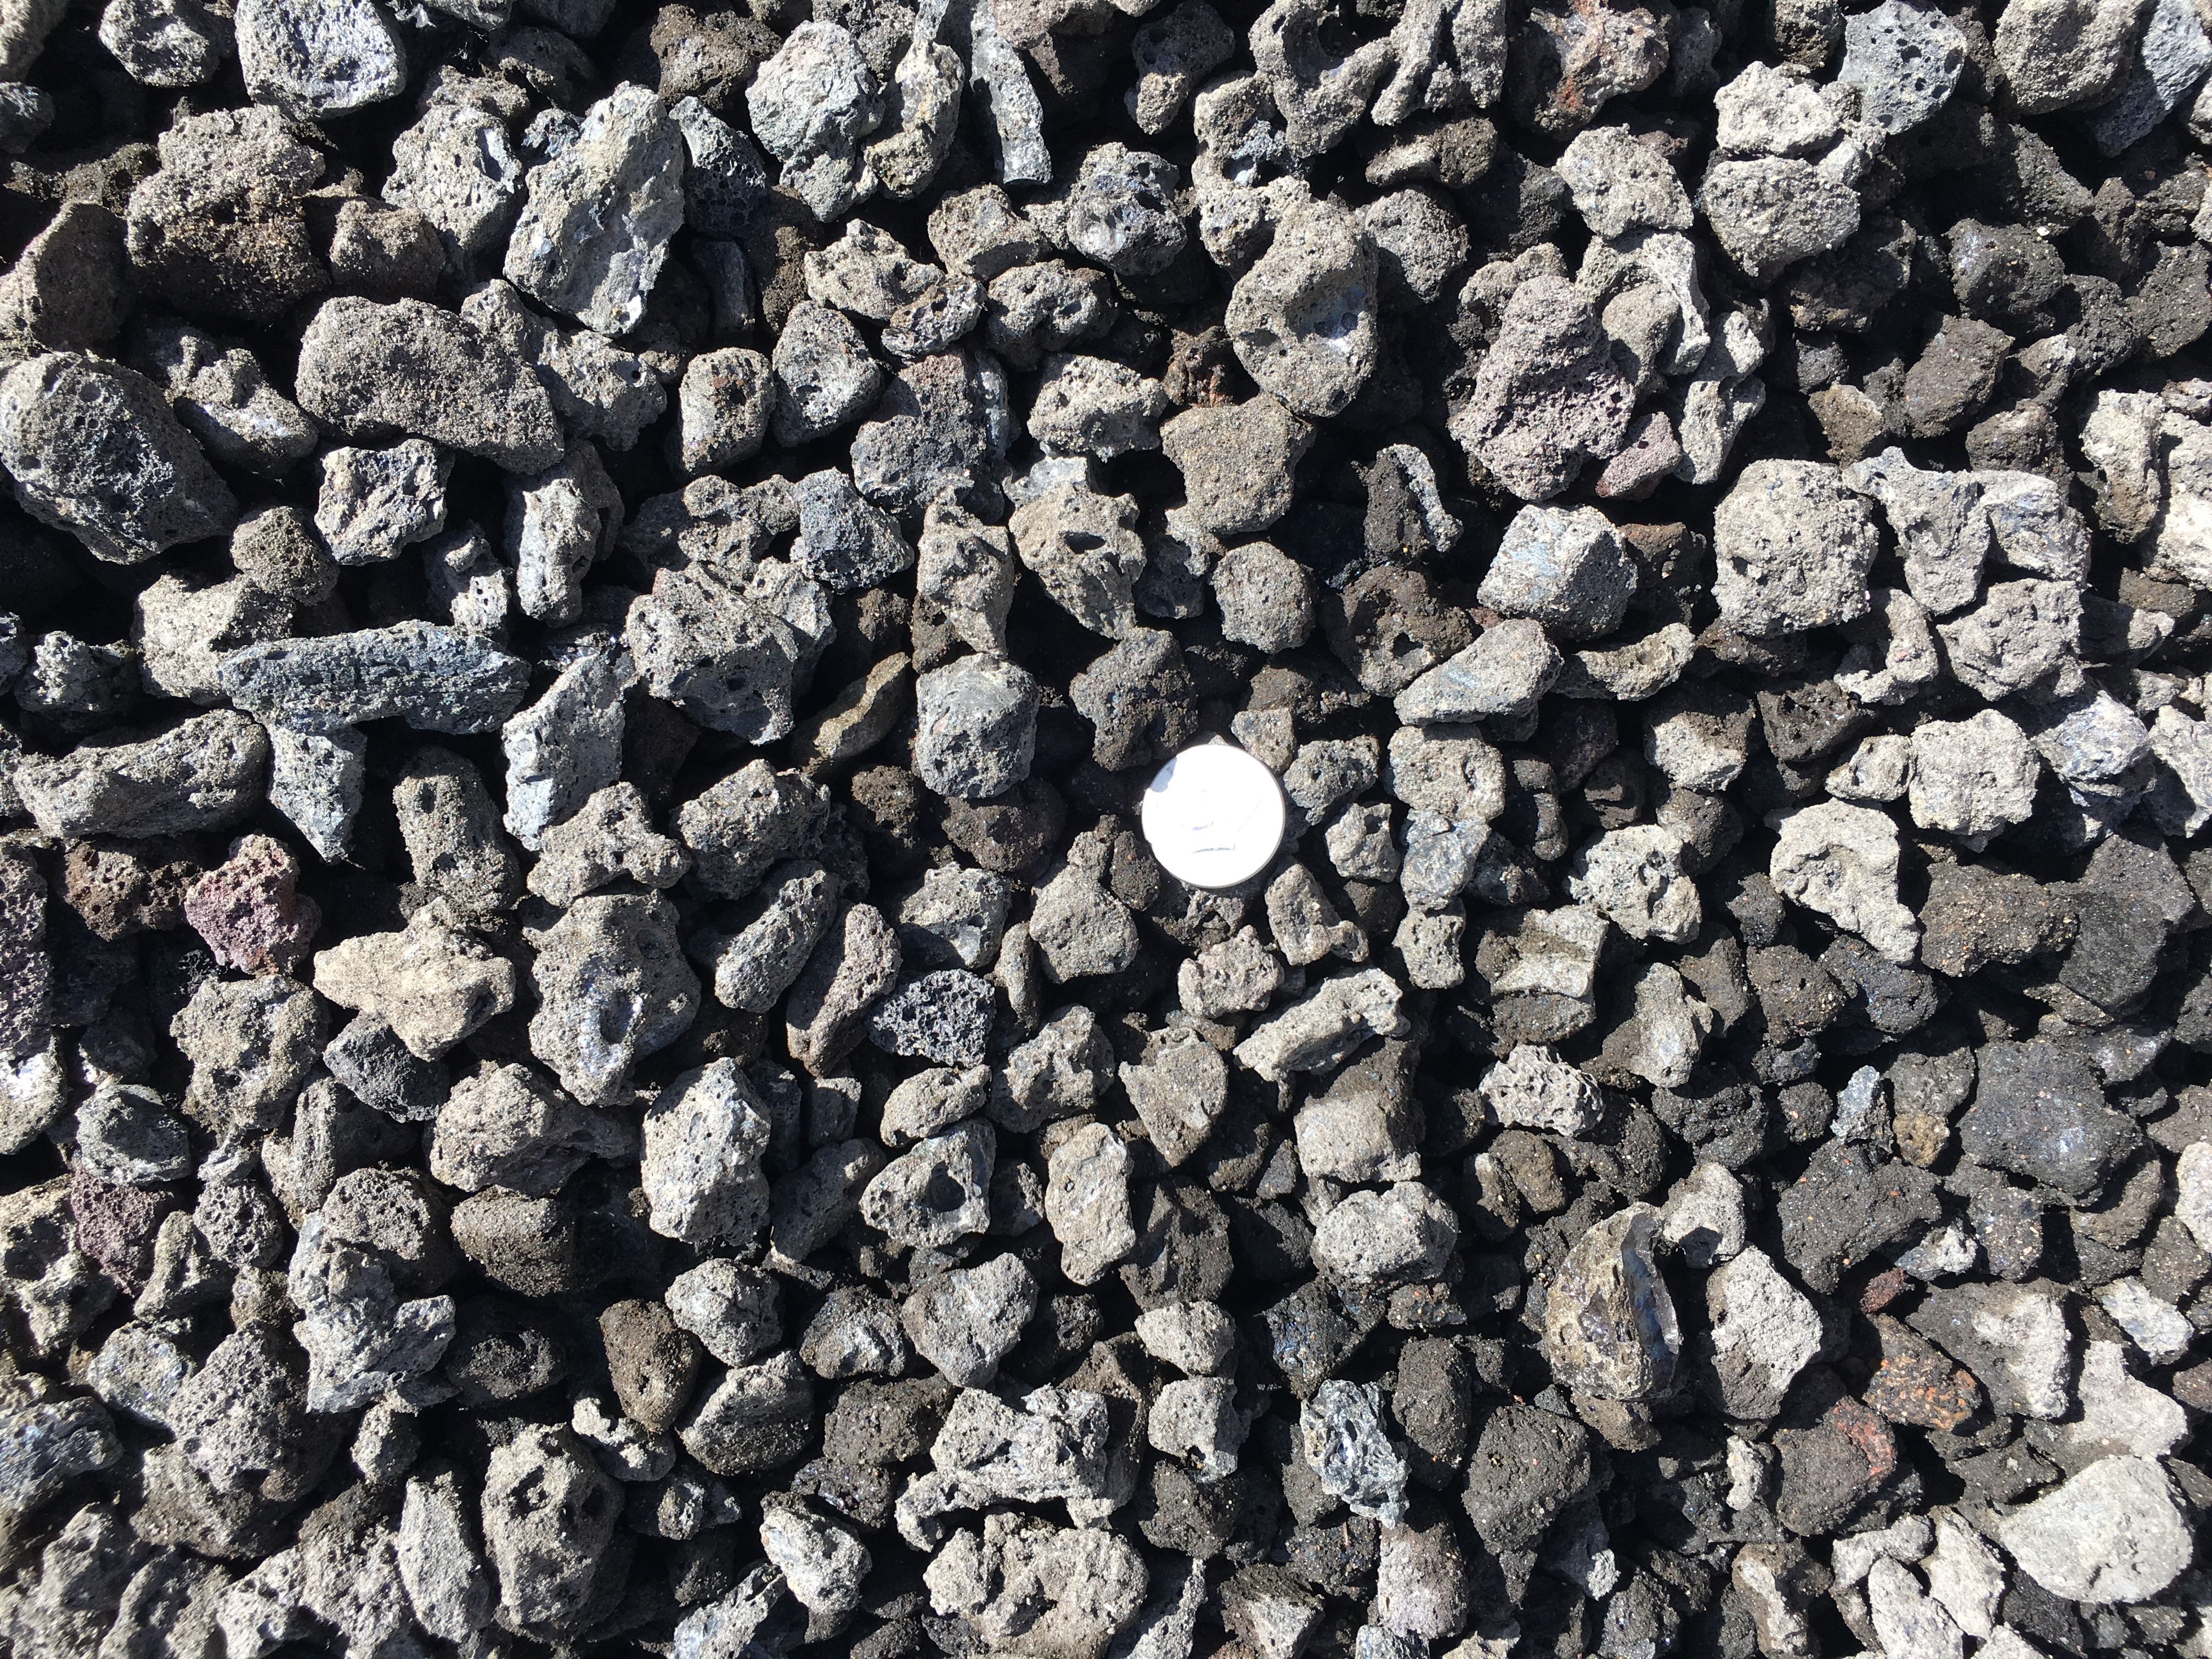 Index of /wp-content/gallery/river-rocks-ground-cover